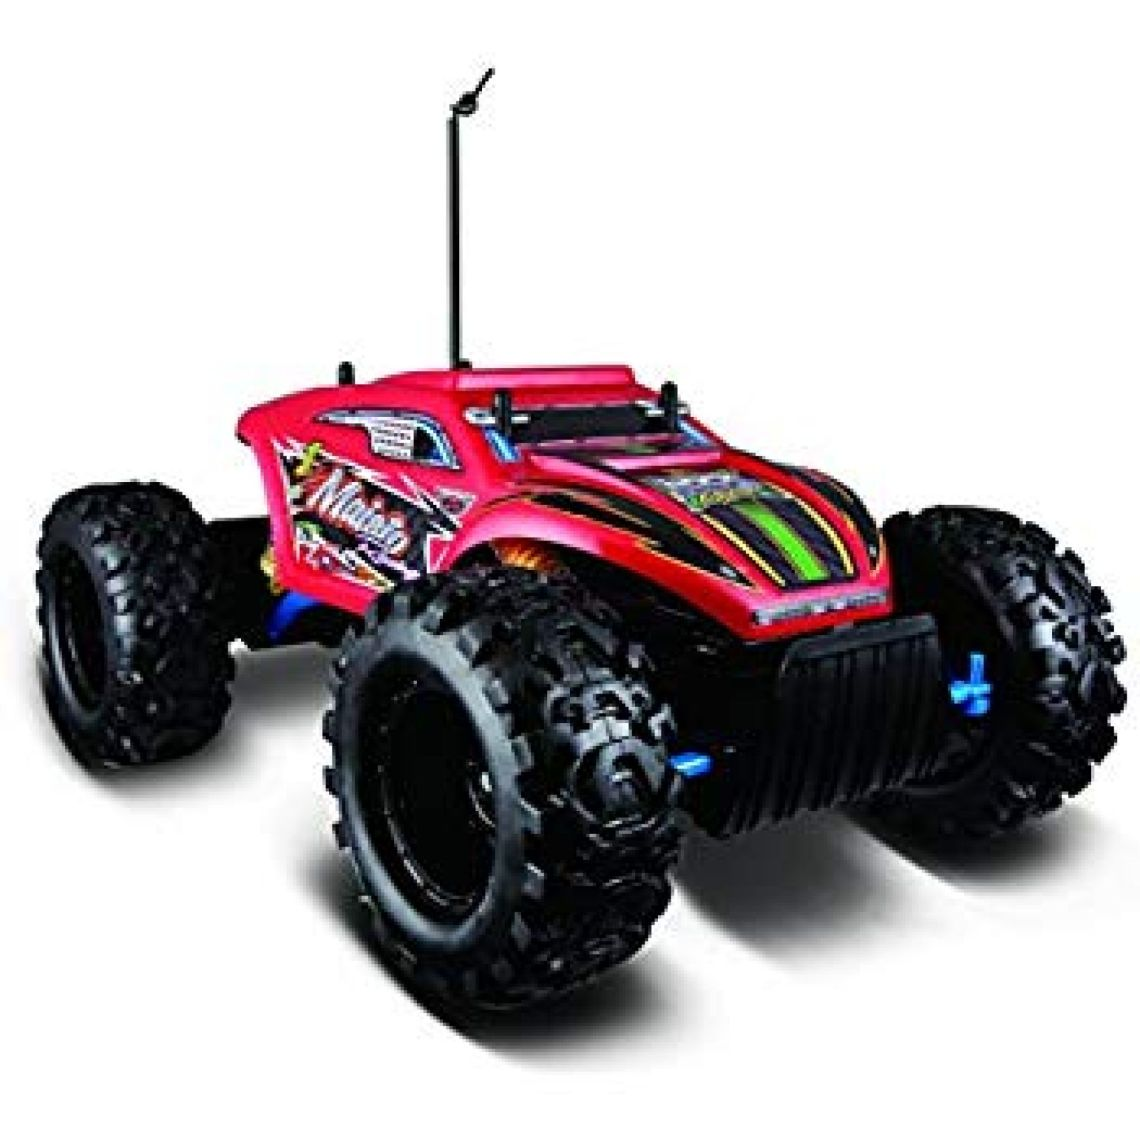 Amazon.com: Maisto R/C Rock Crawler Extreme Radio Control Vehicle, Colors may vary: Toys & Games